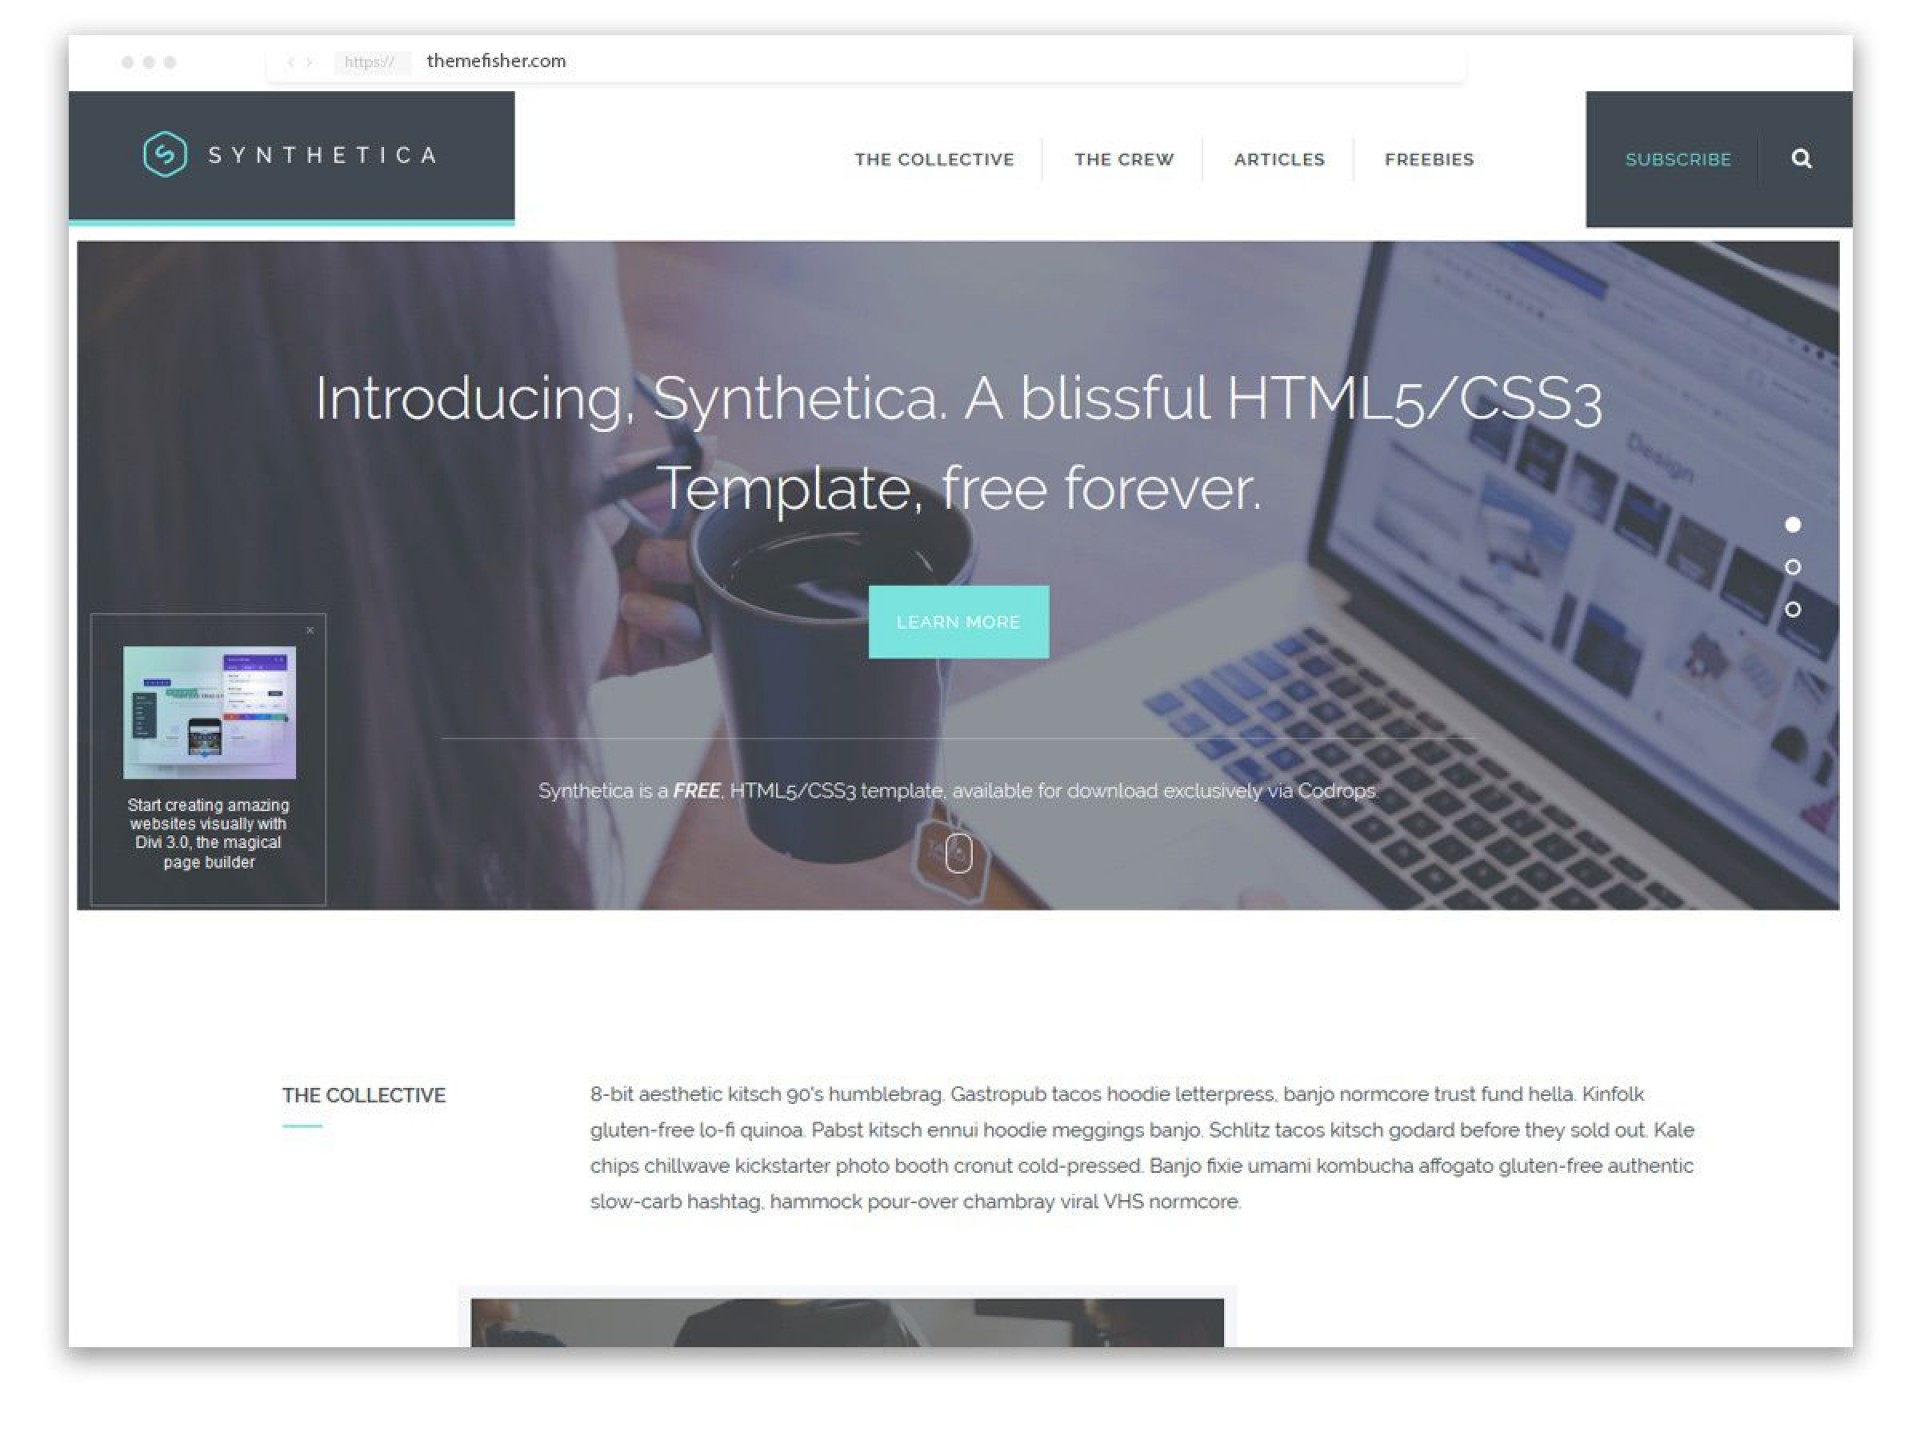 010 Impressive Website Template Html Free Download Highest Quality  Indian School Software Company Spice1920